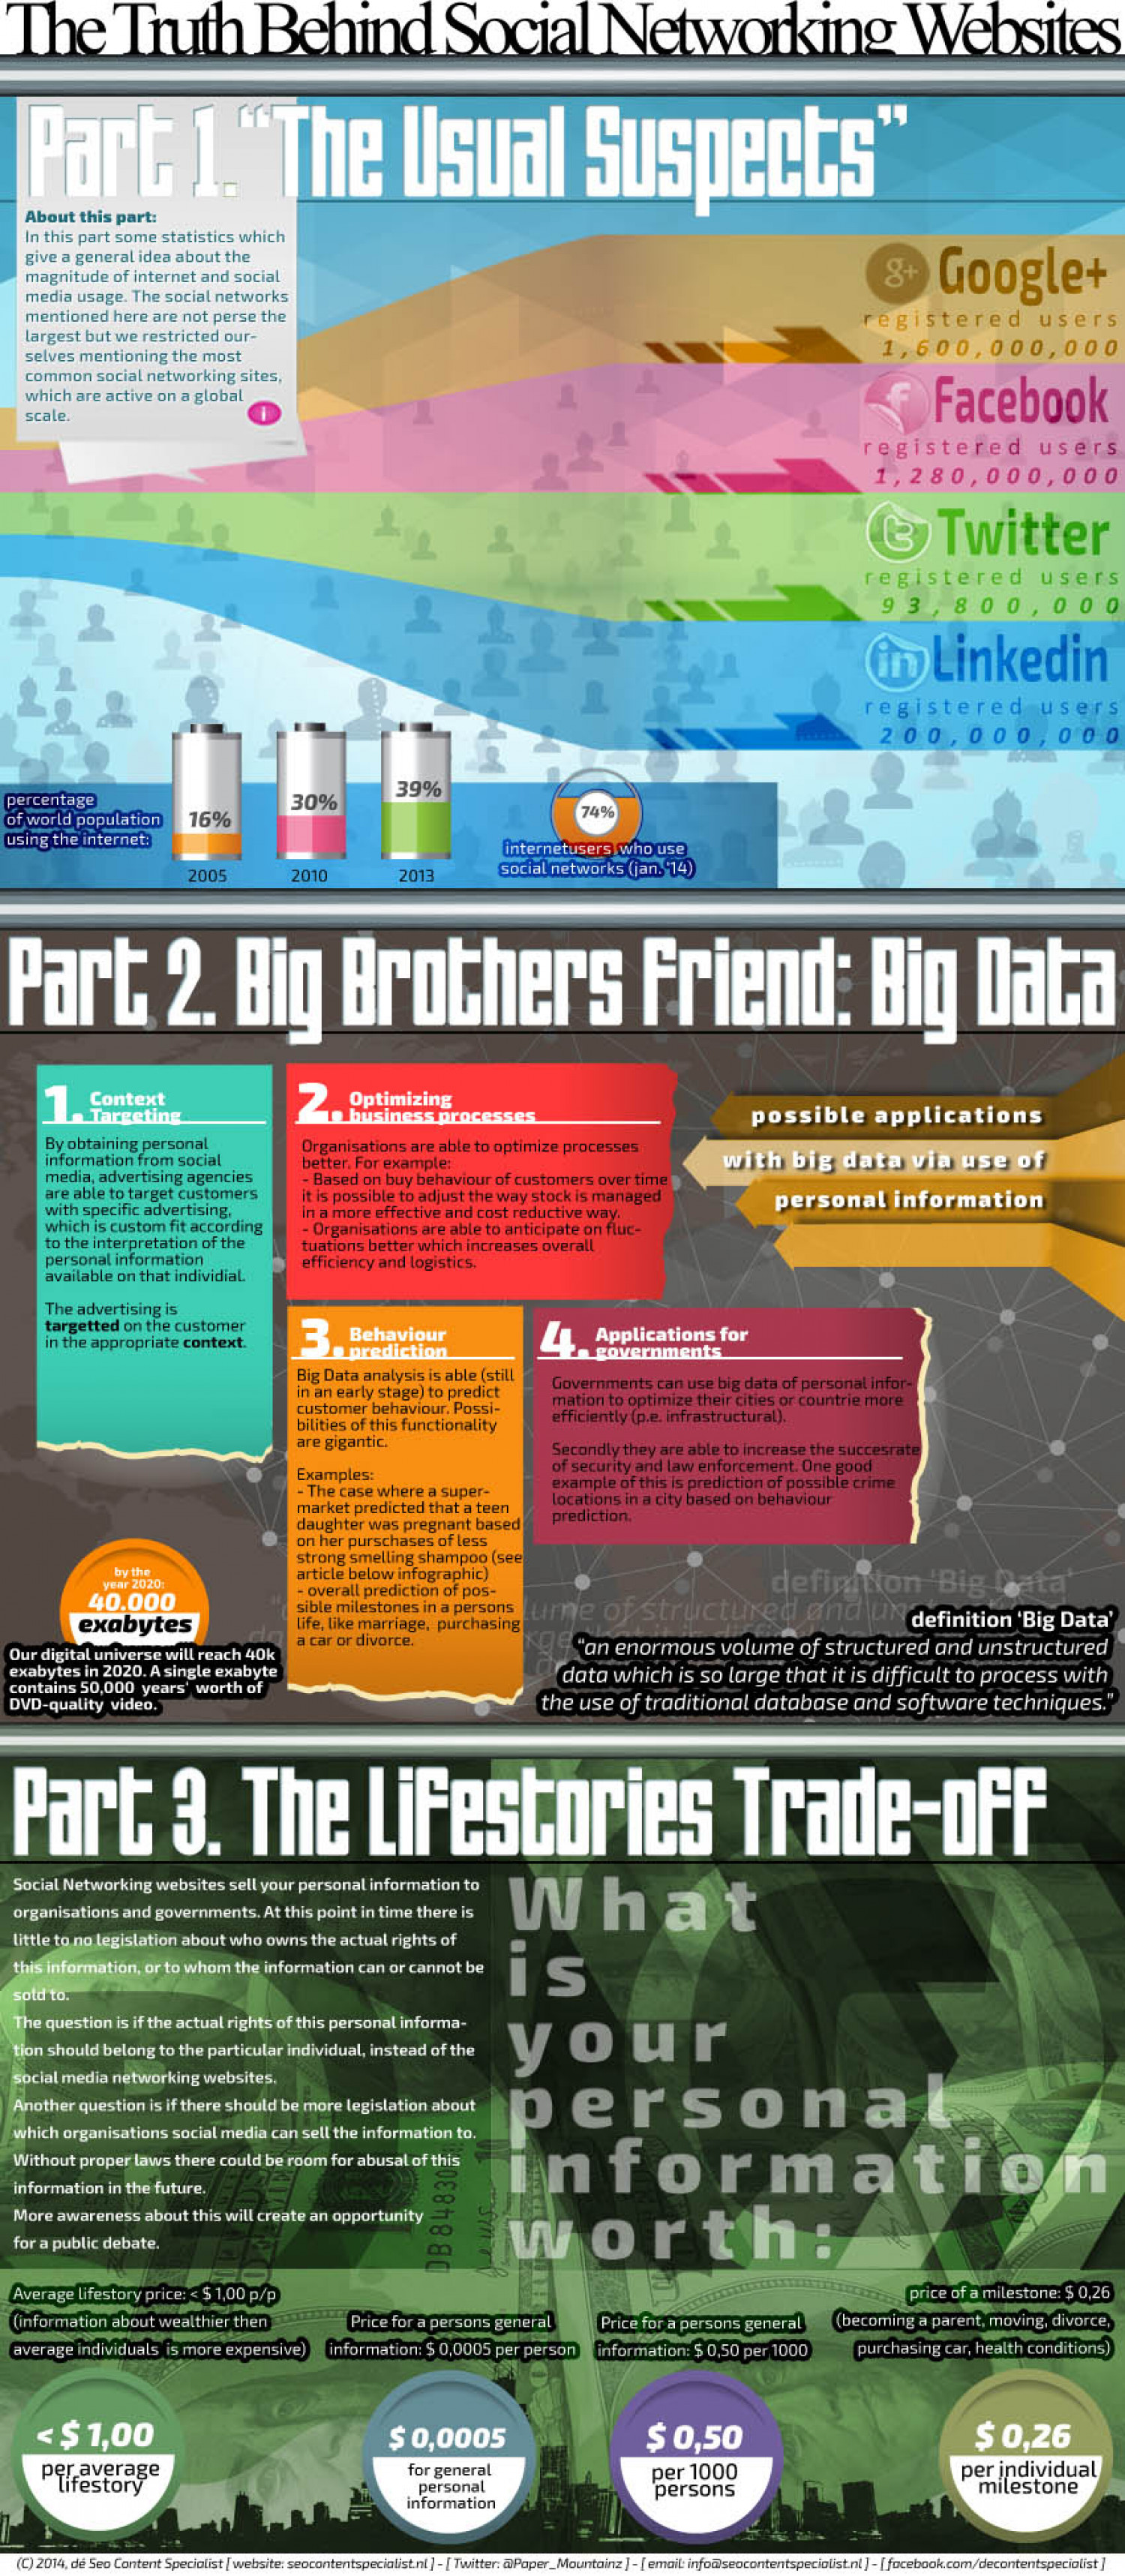 What goes on behind the scenes at social networking websites? Infographic